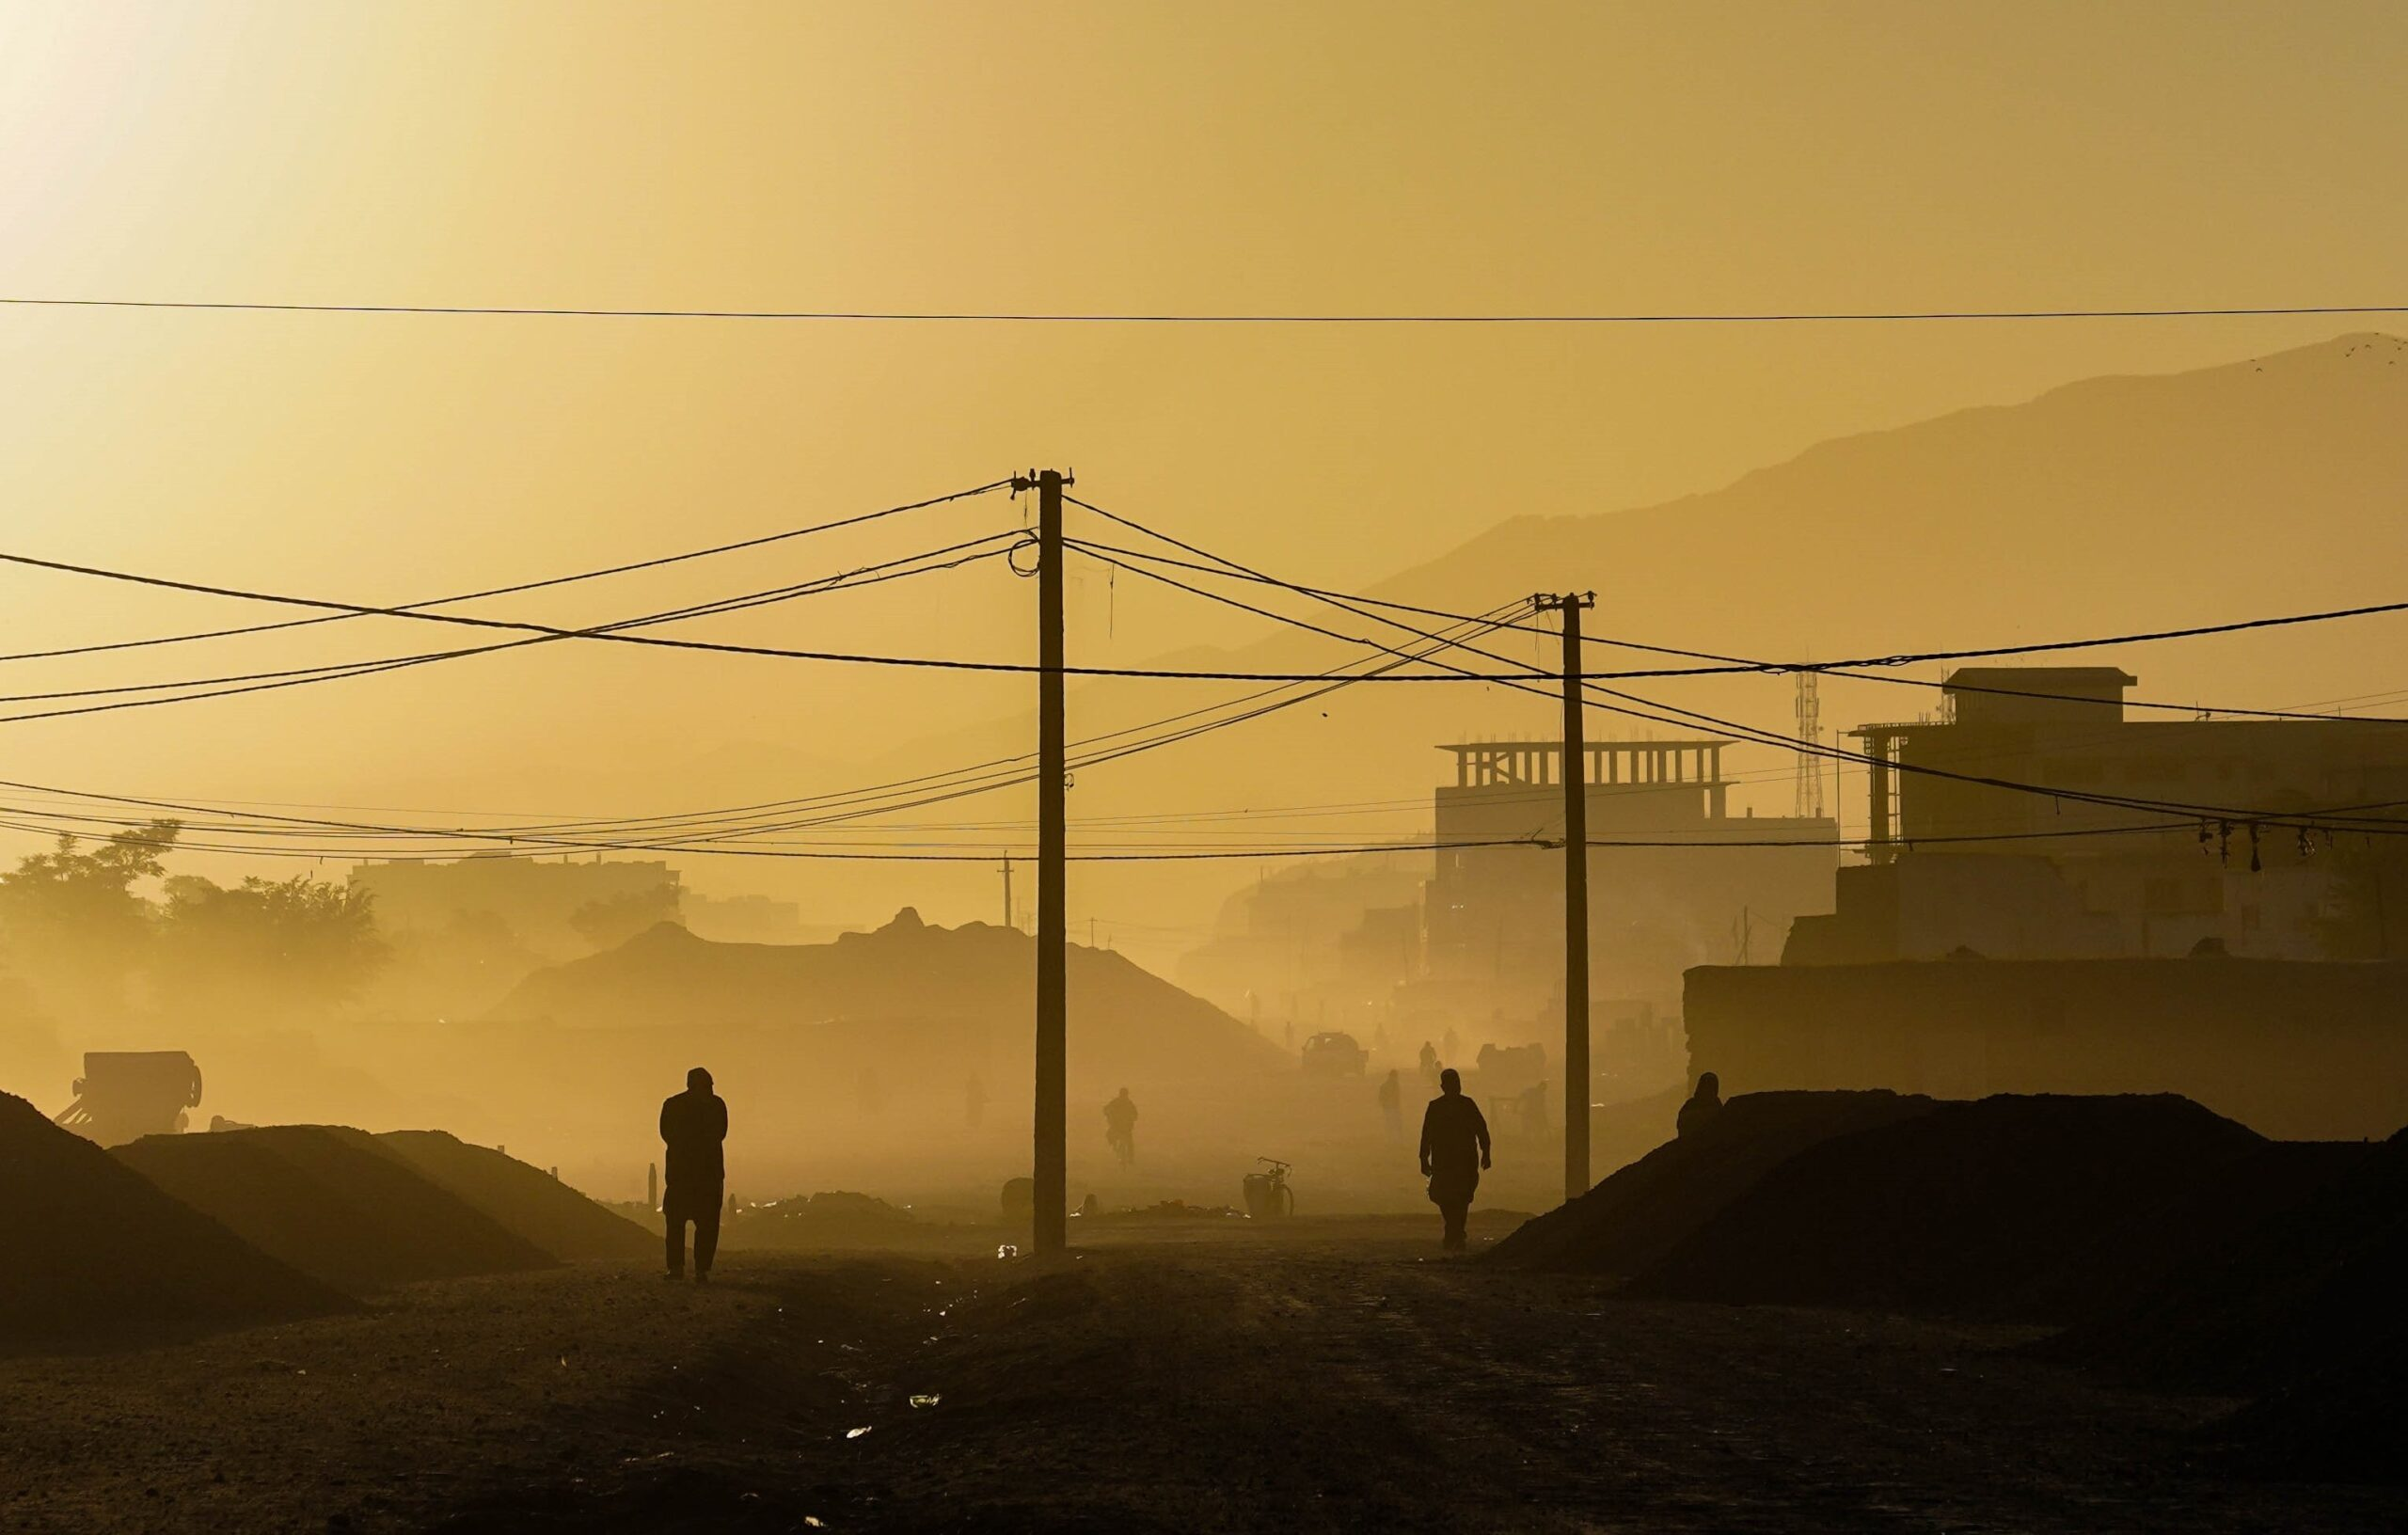 People walking down a street with wires strung above in the early morning